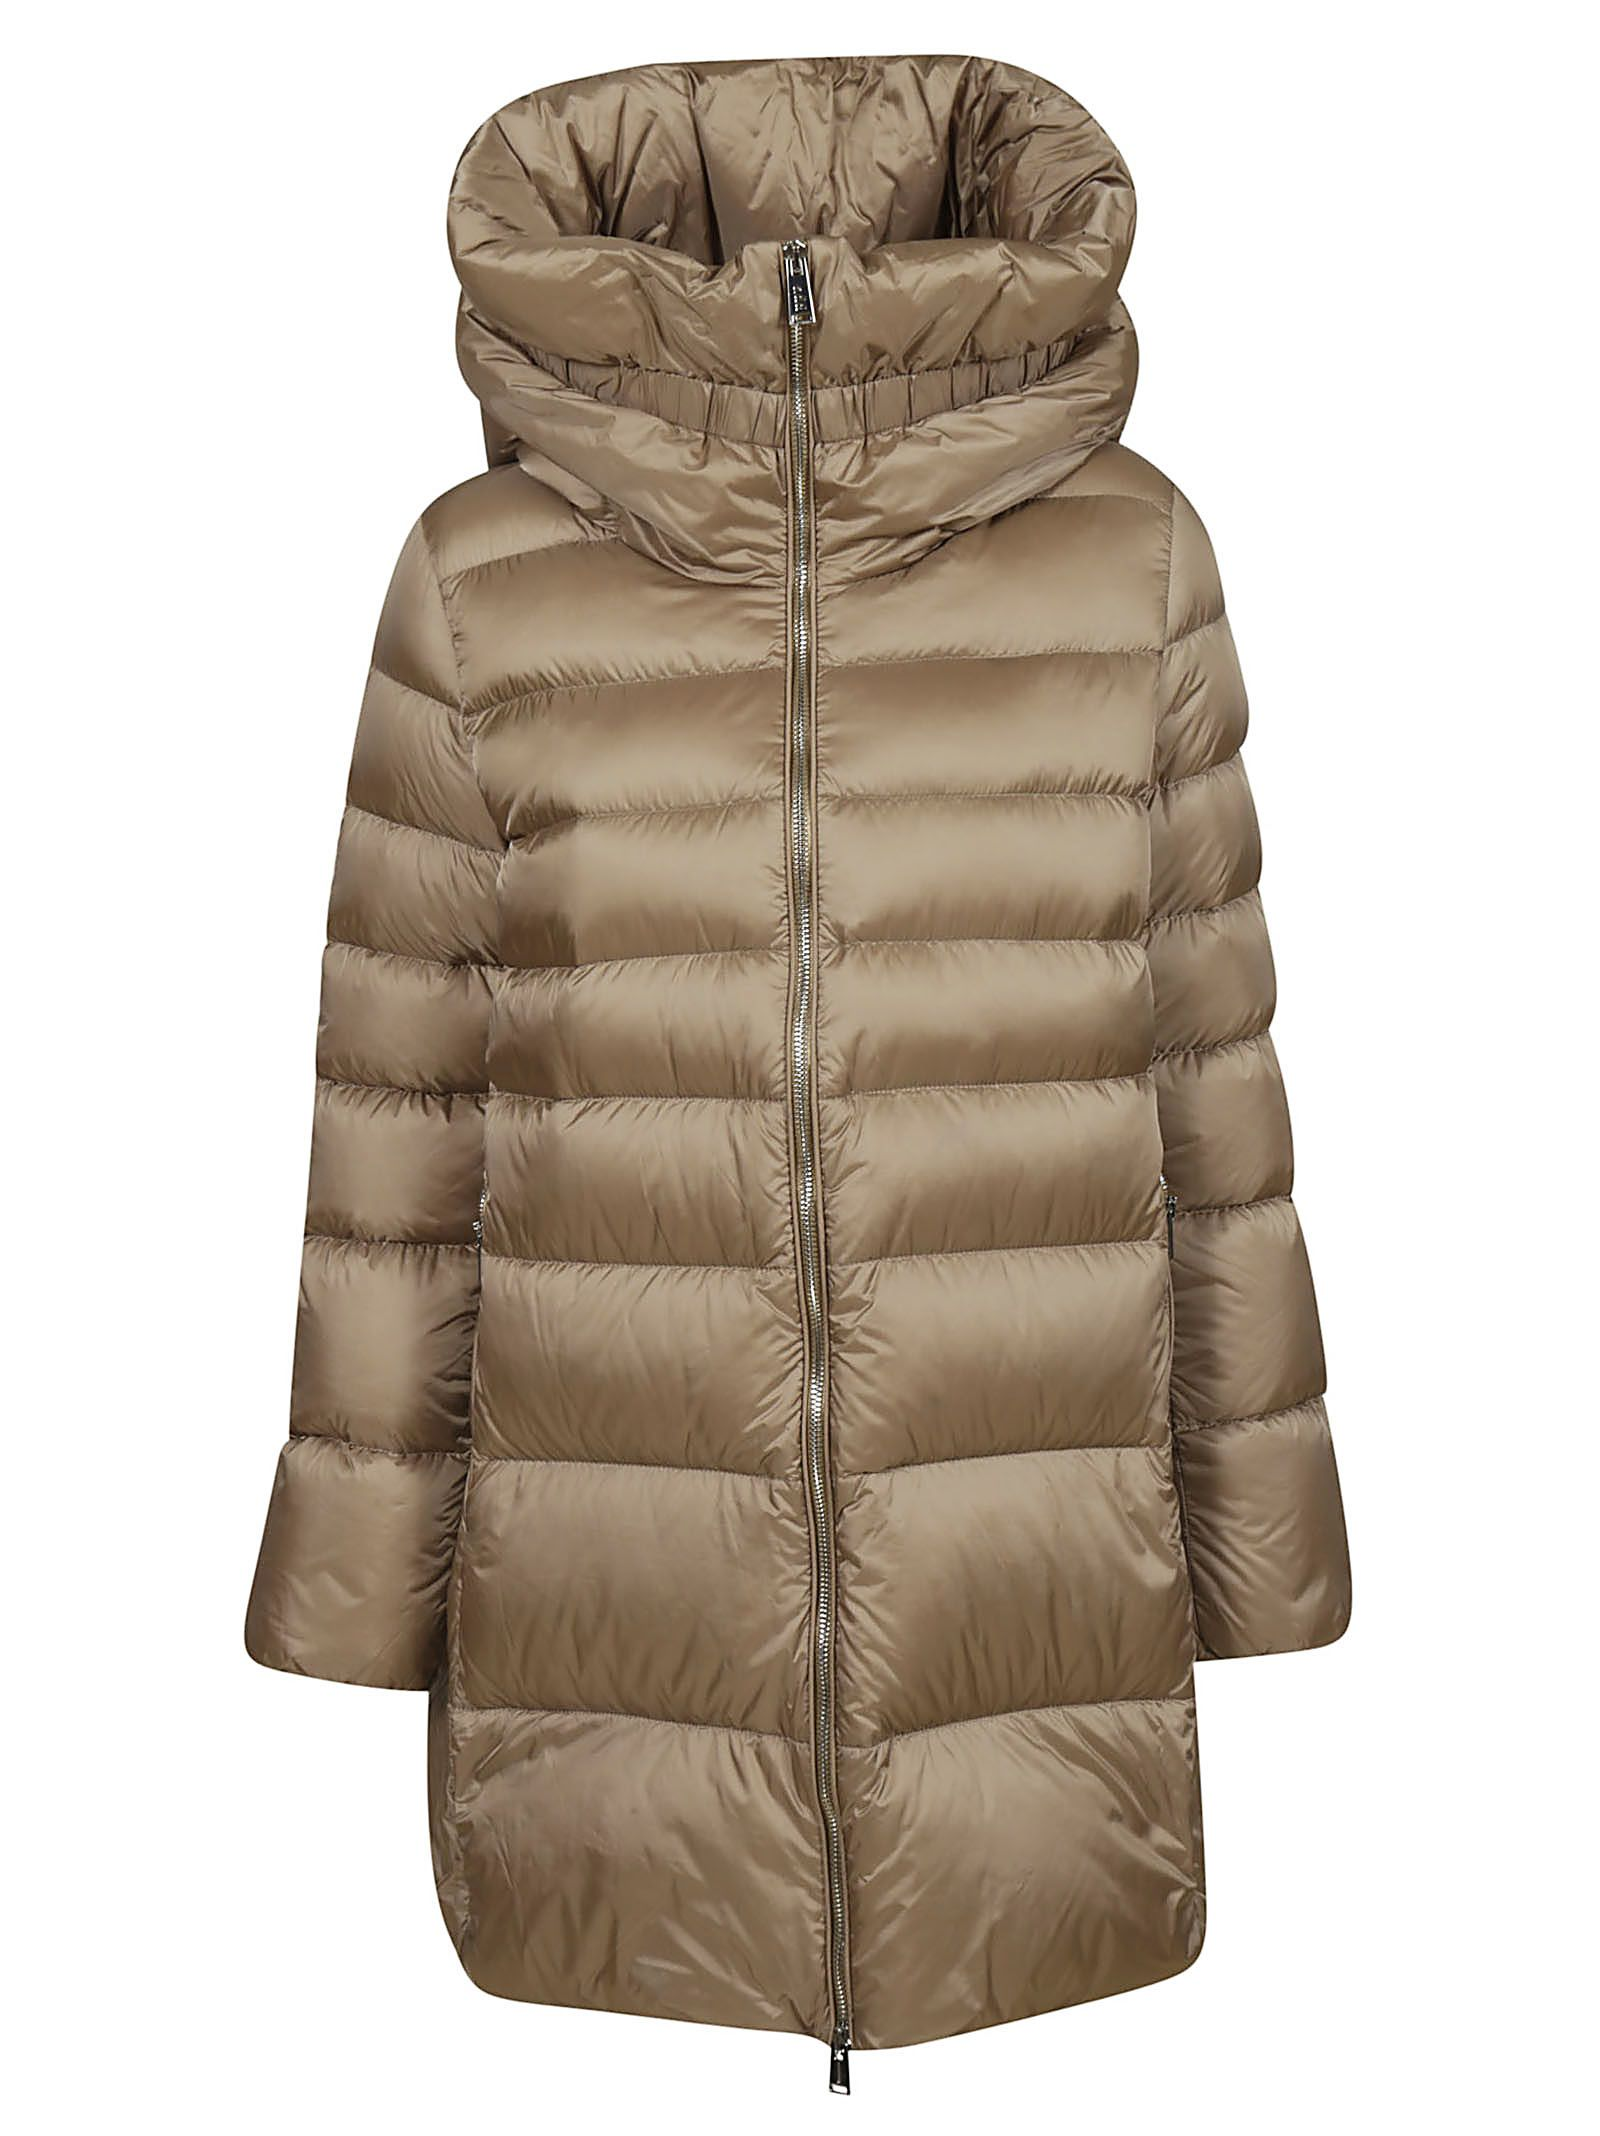 ADD Zipped-Up Padded Jacket in Champagne